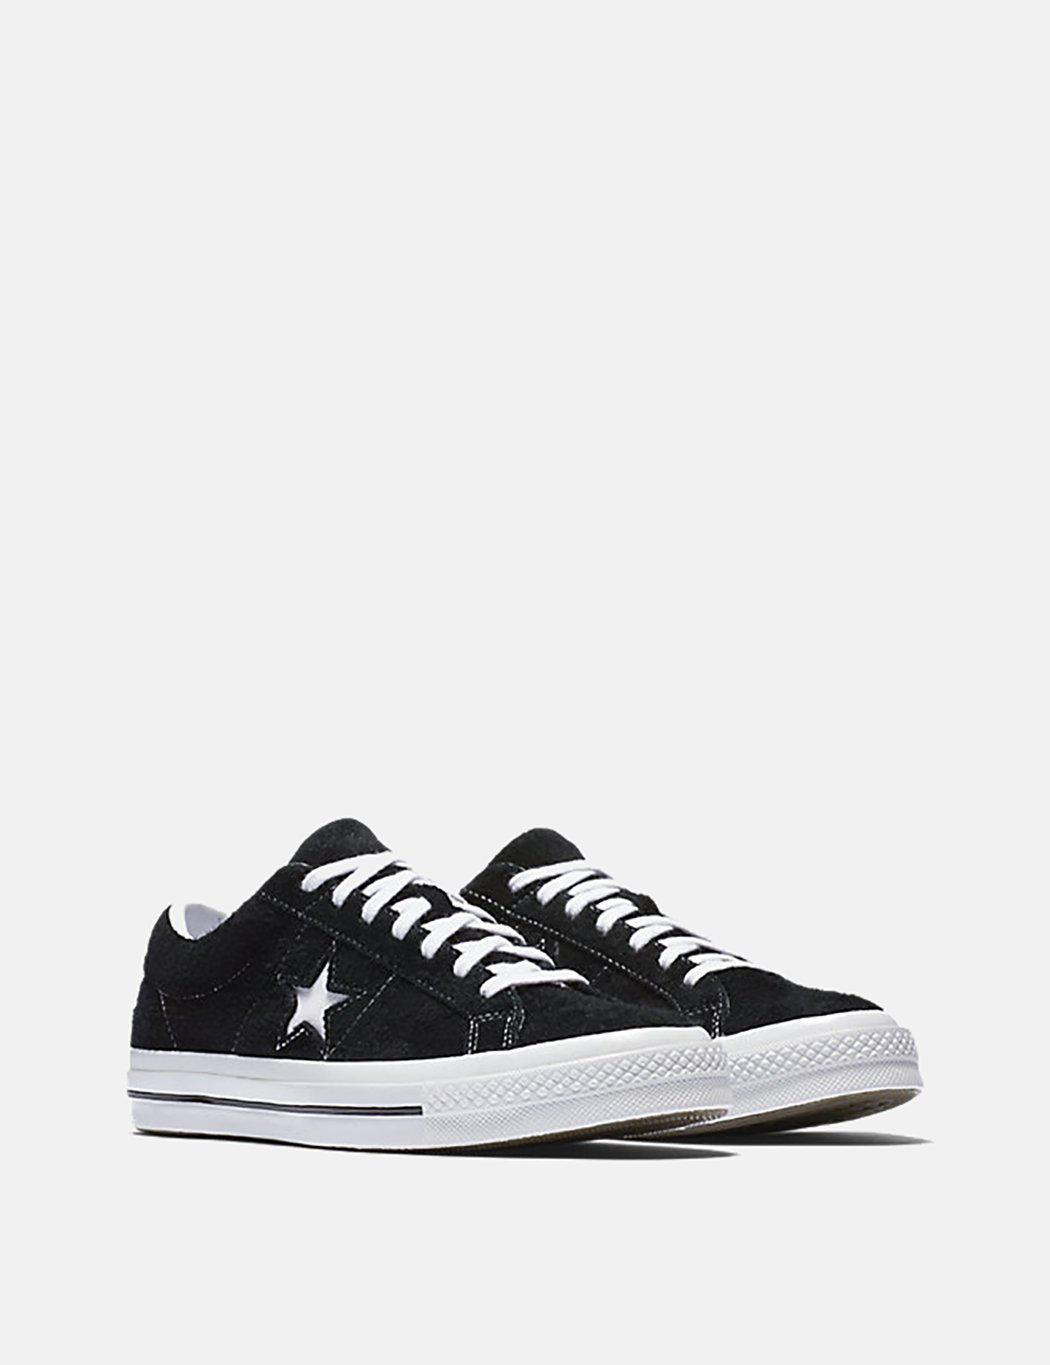 d64df45eabcd7c ... italy lyst converse one star 74 in black for men save 51.64835164835165  55f55 7695e